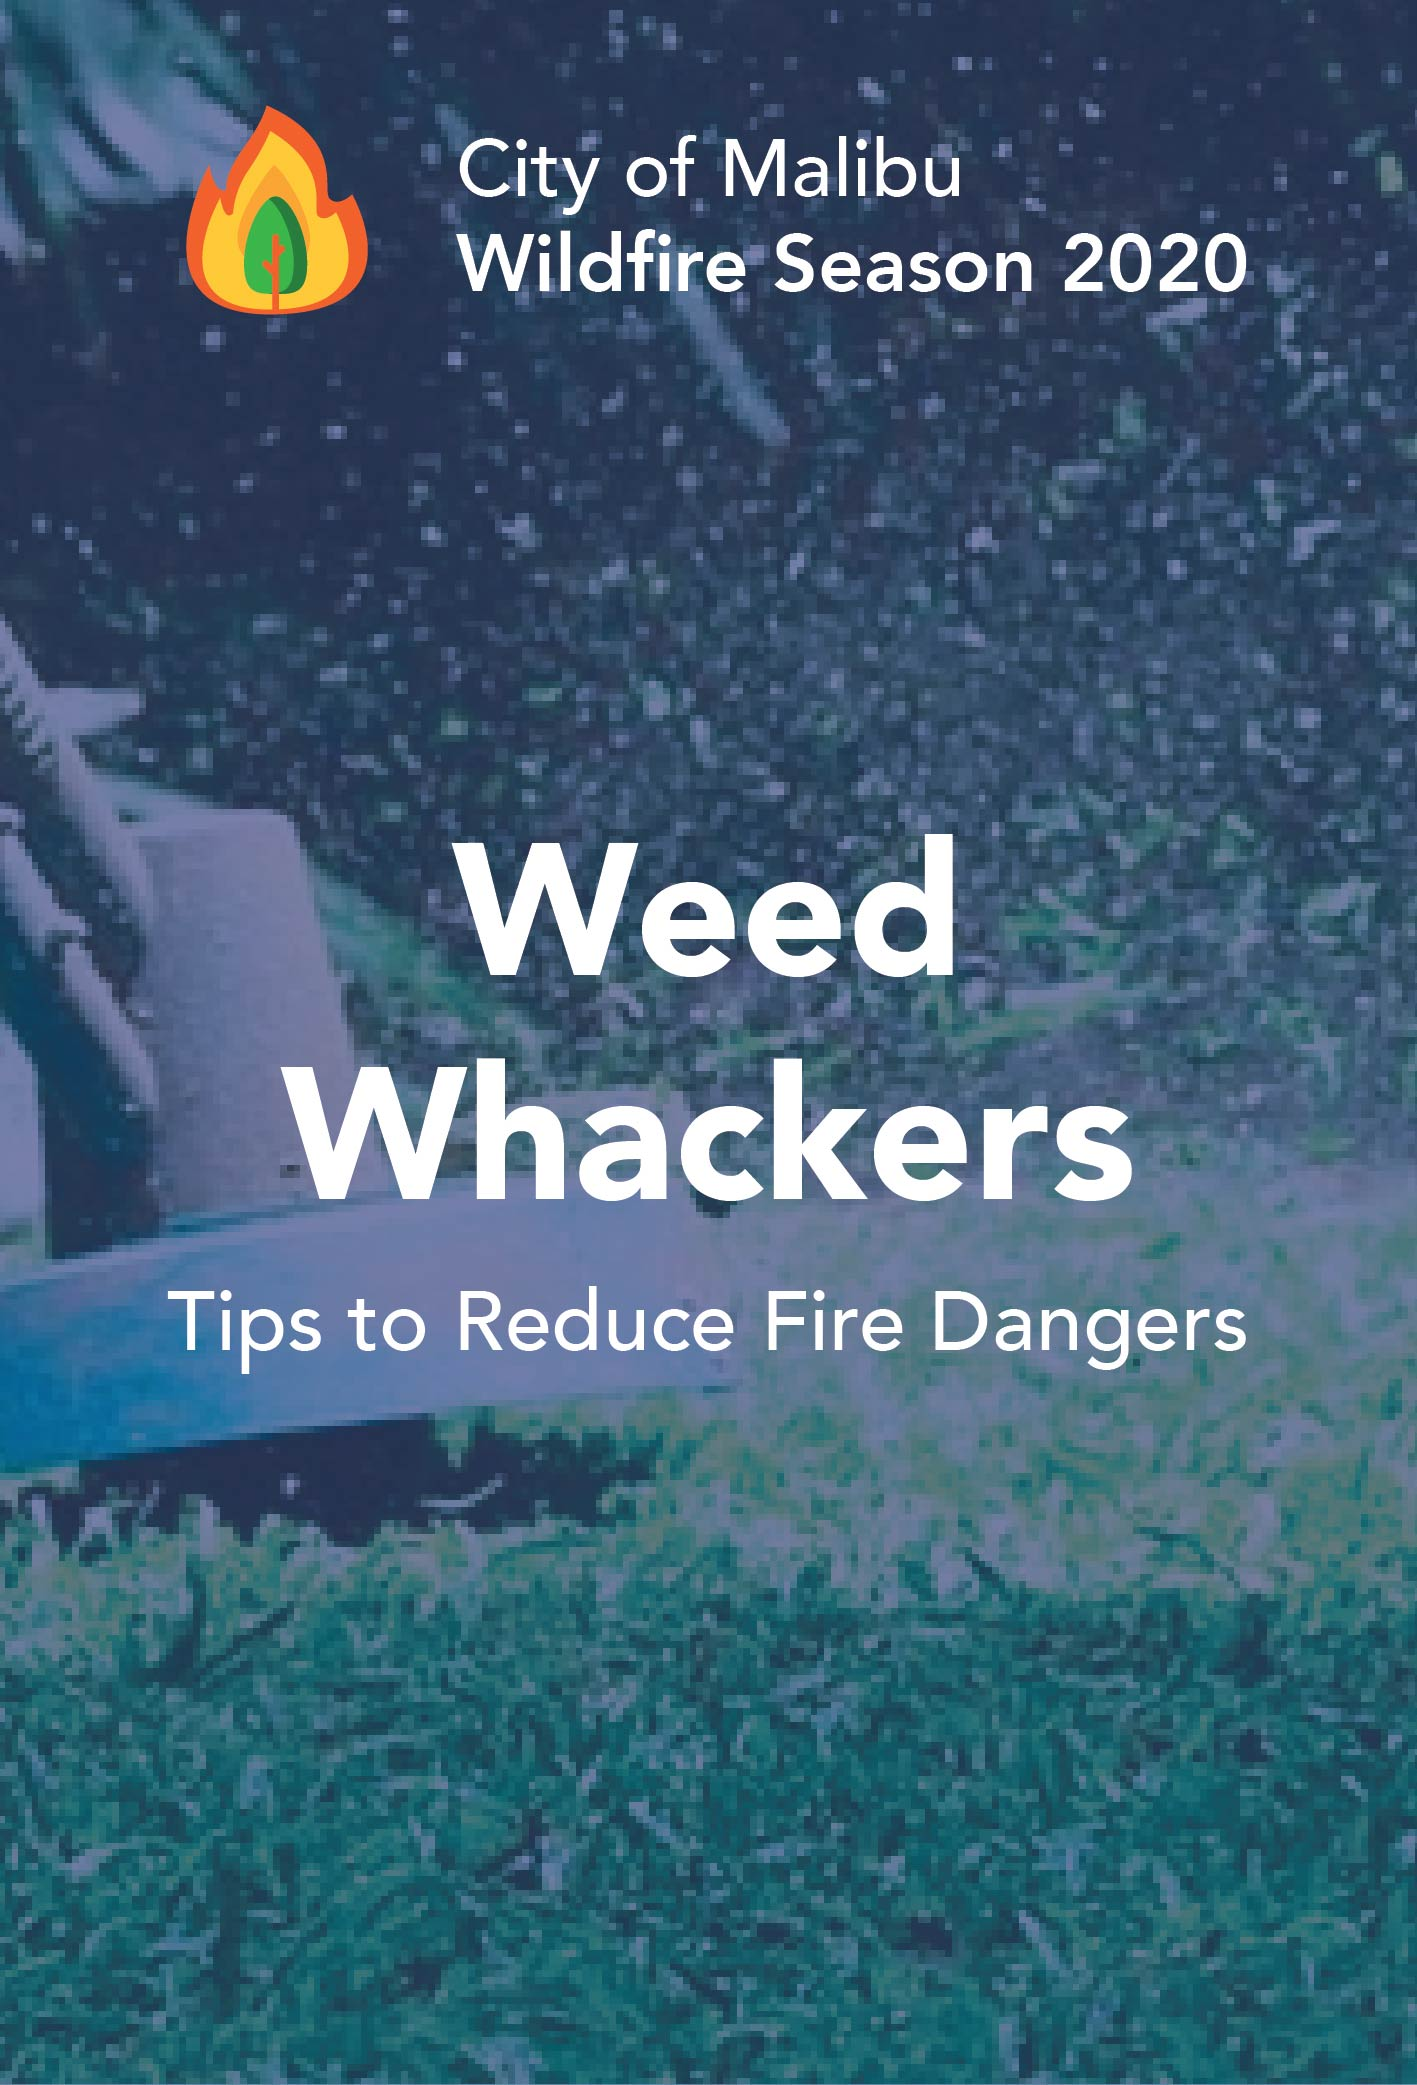 Weed whacker newsflash-05